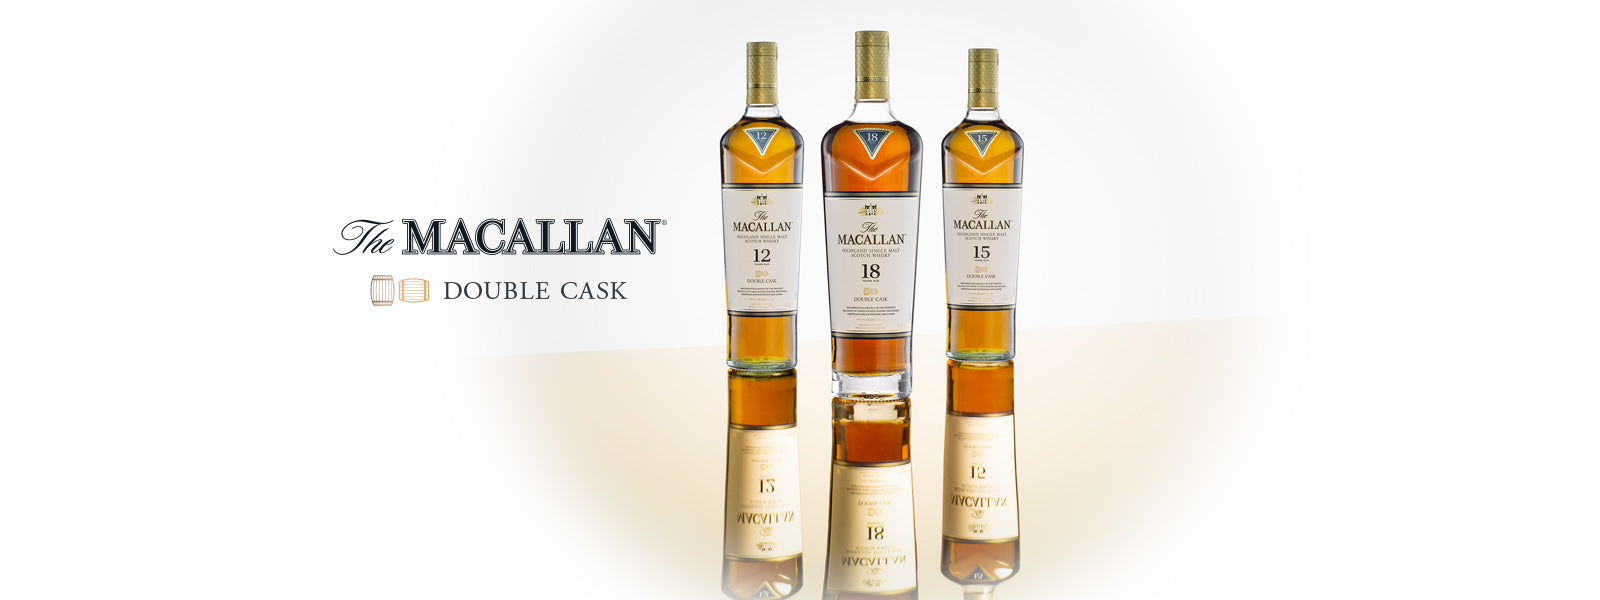 Buy The Macallan Scotch Whisky Collection